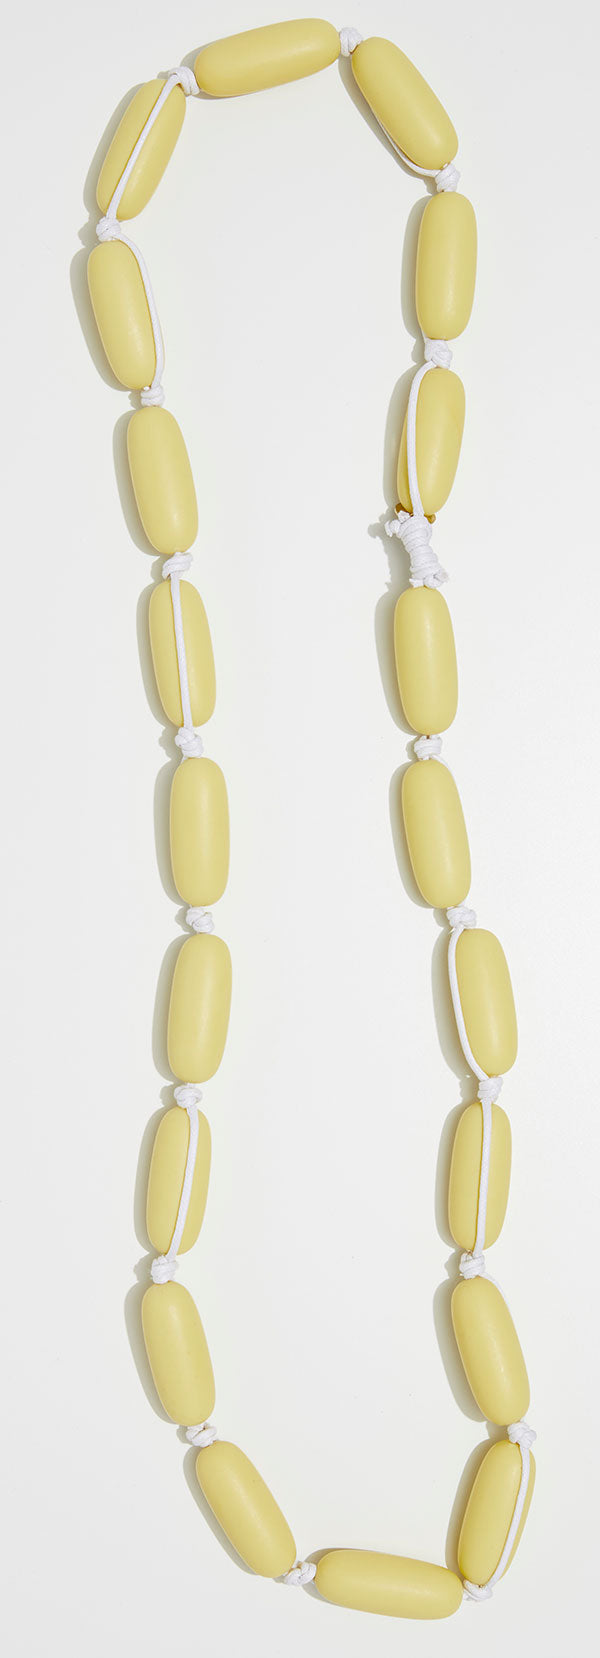 Evie Marques Original necklace Bowie on white cord